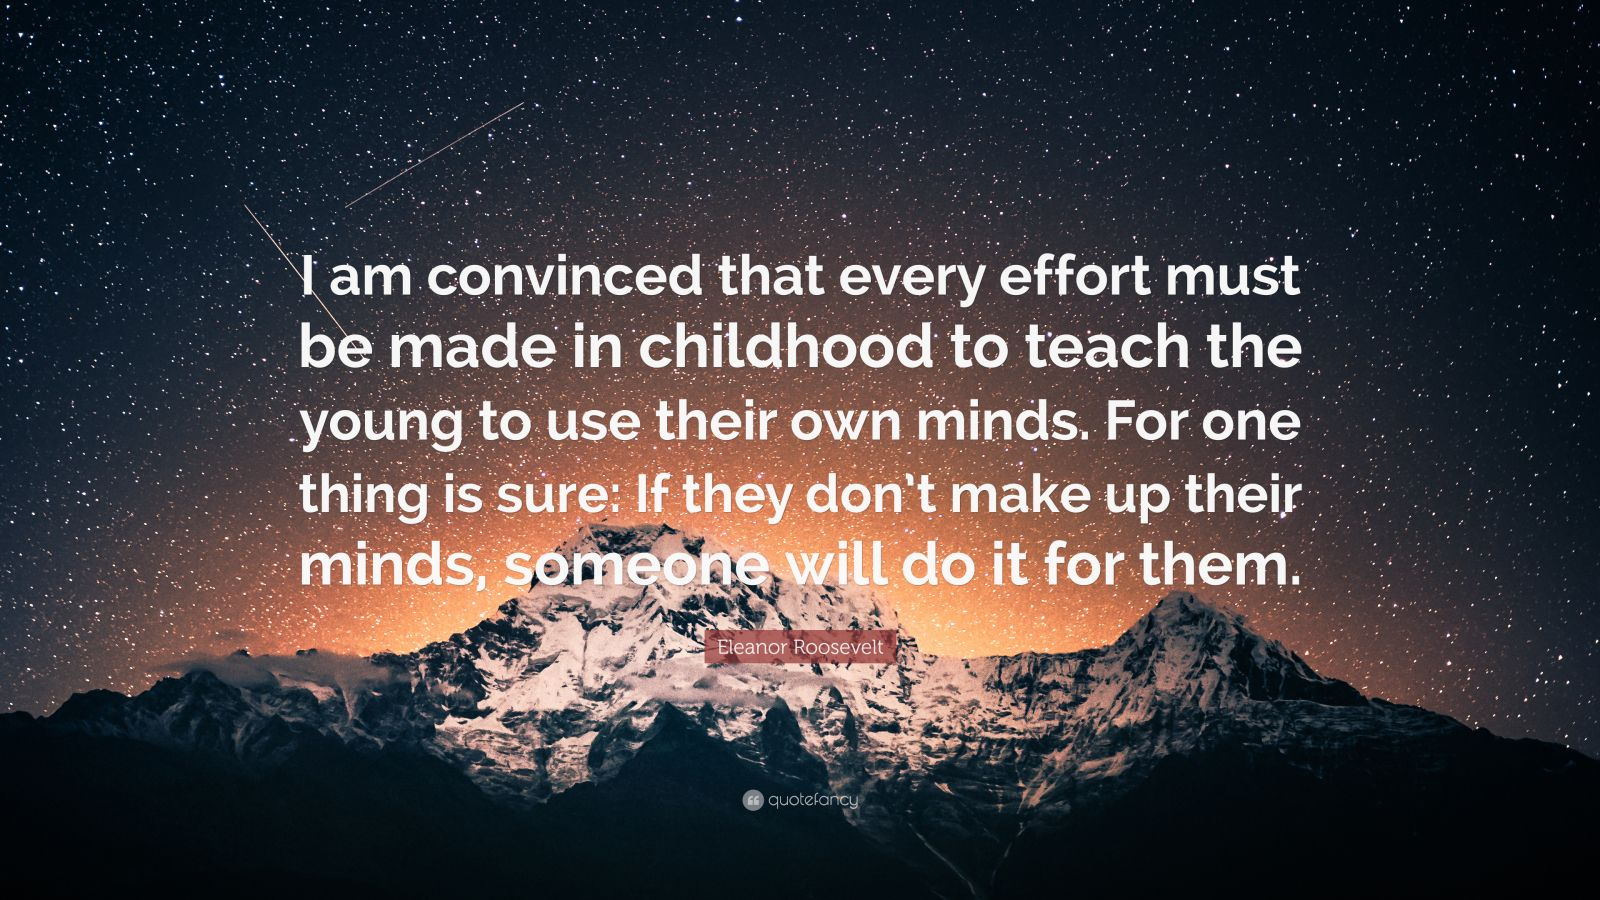 """Eleanor Roosevelt Quote: """"I am convinced that every effort must be made in childhood to teach the young to use their own minds. For one thing is sure: If they don't make up their minds, someone will do it for them."""""""